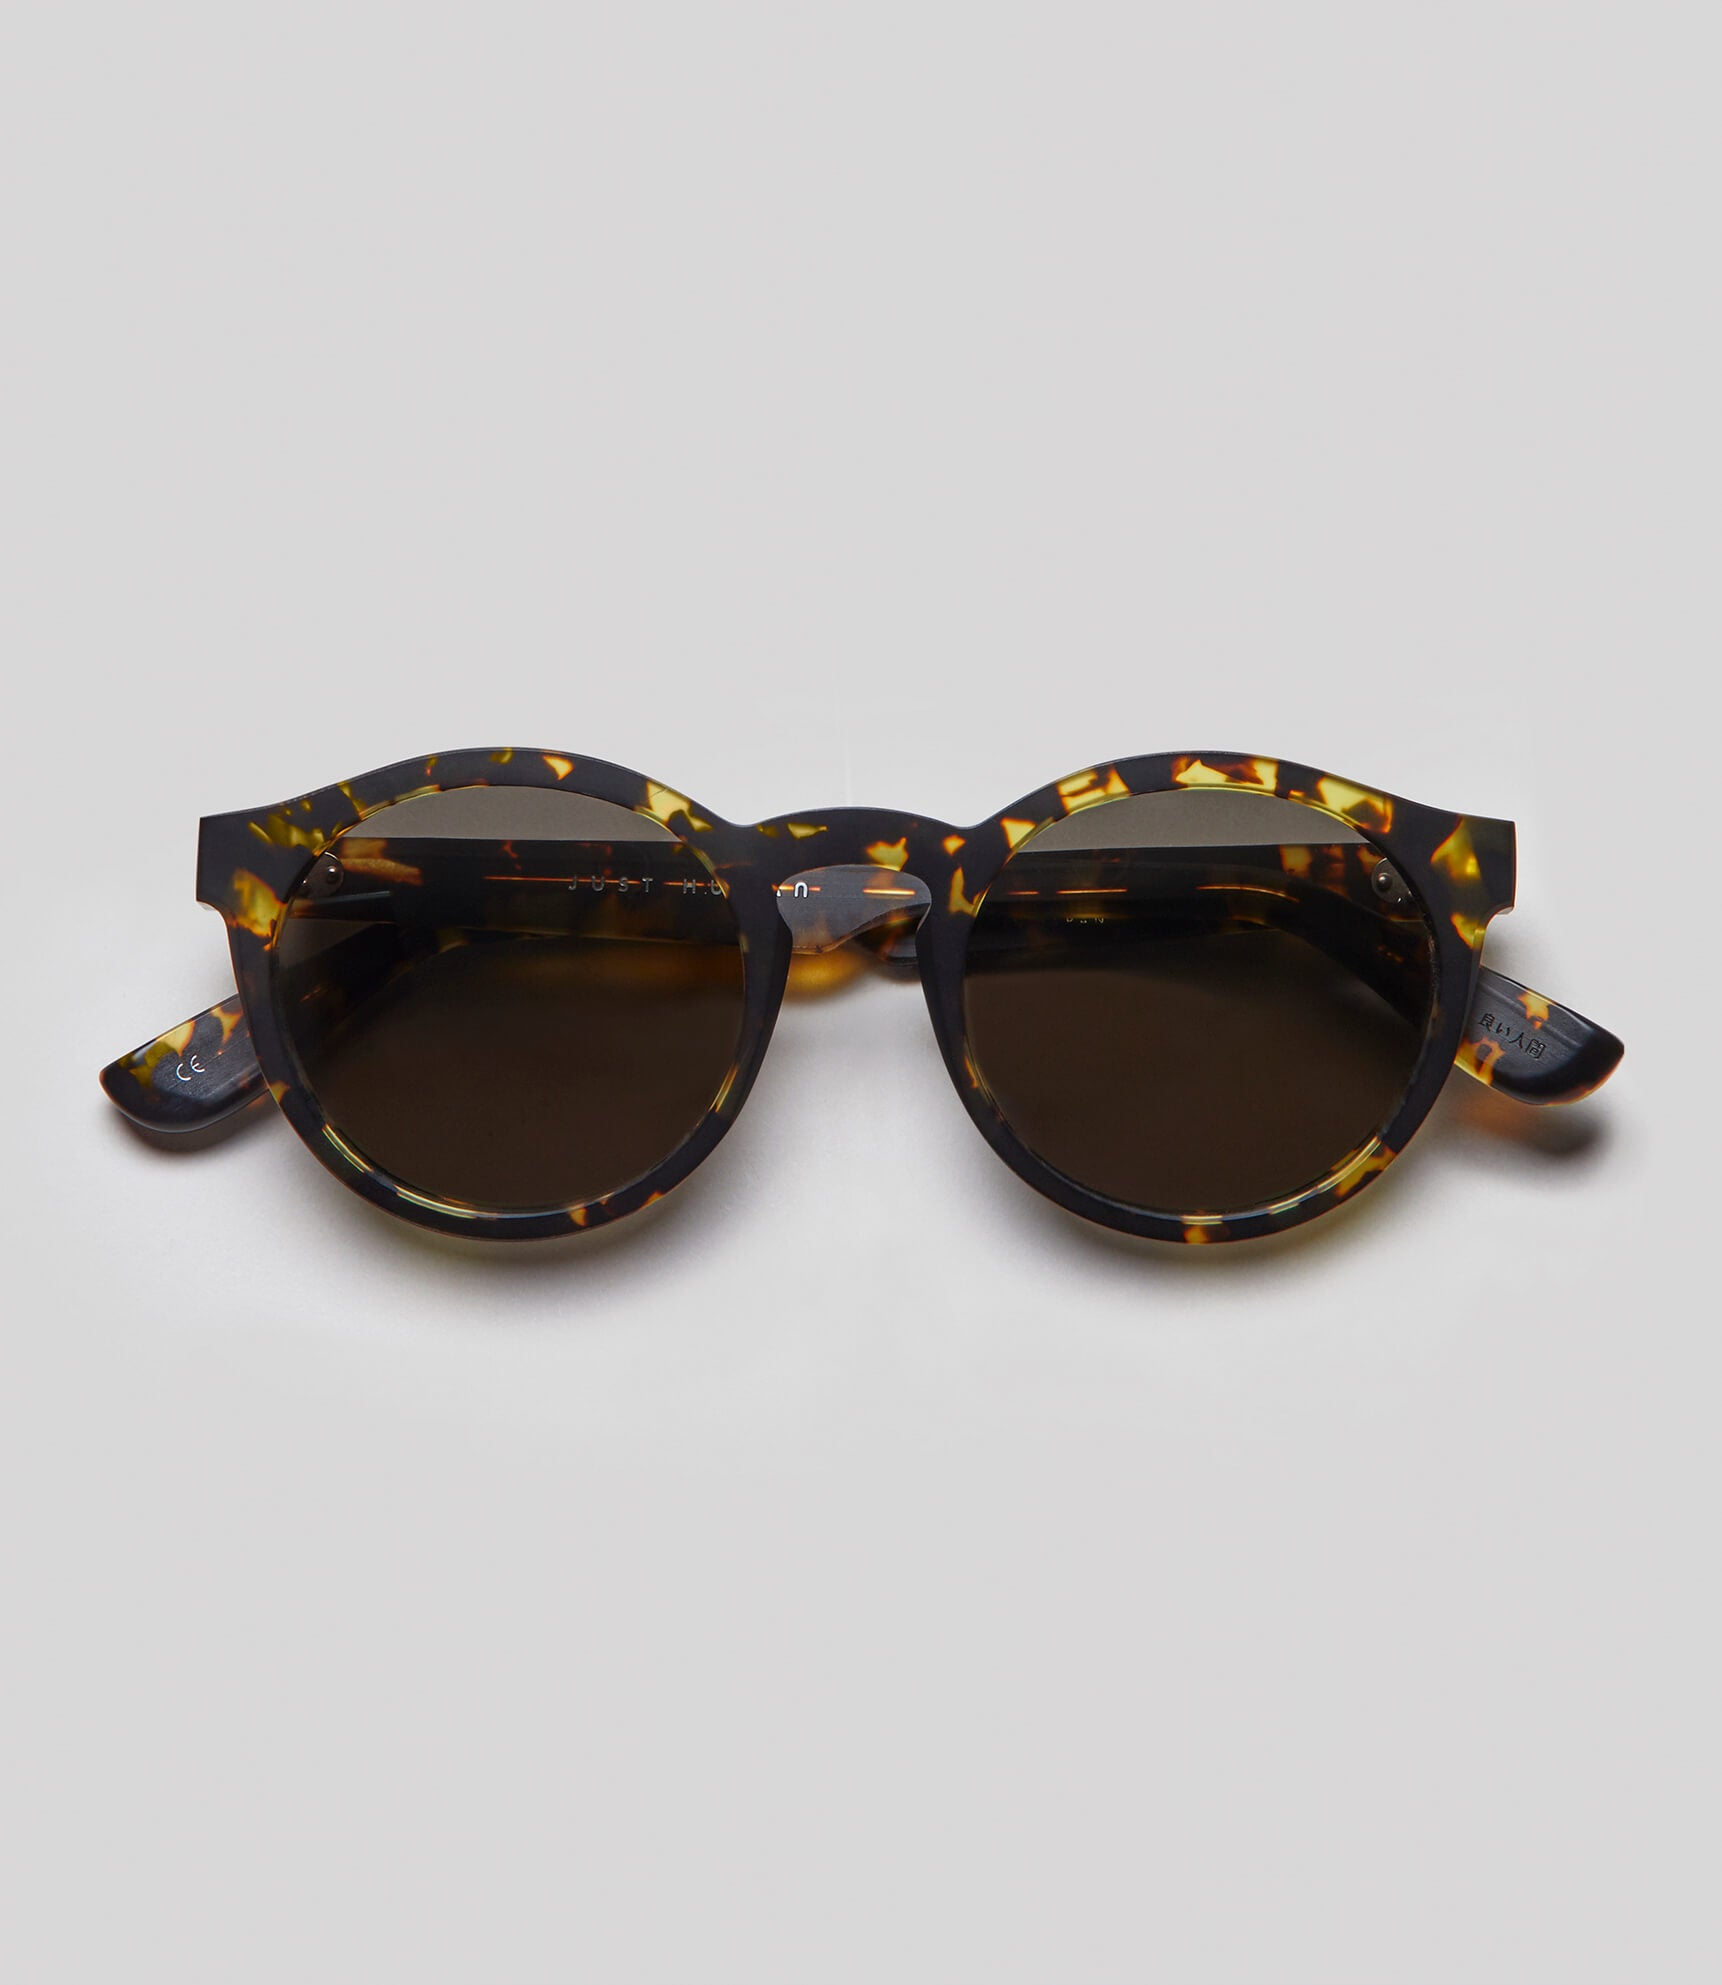 Round tortoise sunglasses eco friendly sustainable fashion made in Japan unisex sunglasses for men sunglasses for women and blue light filter